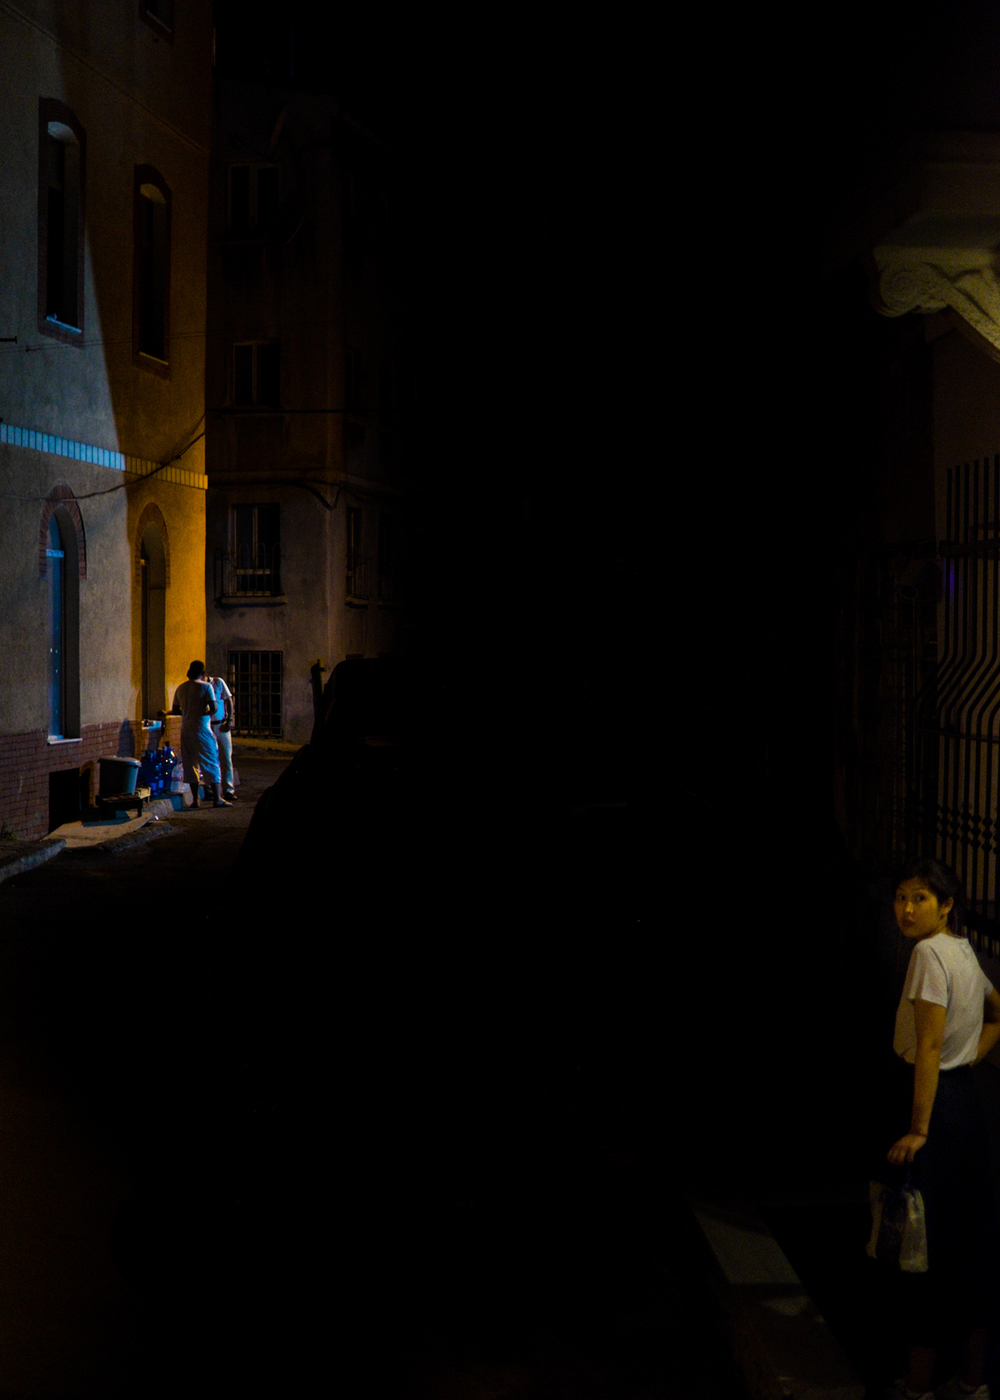 Istanbul-Night-Tarlabaşı-Beyoğlu-Men-Woman-Looking-Foreground-Matthew-Coleman-Photography